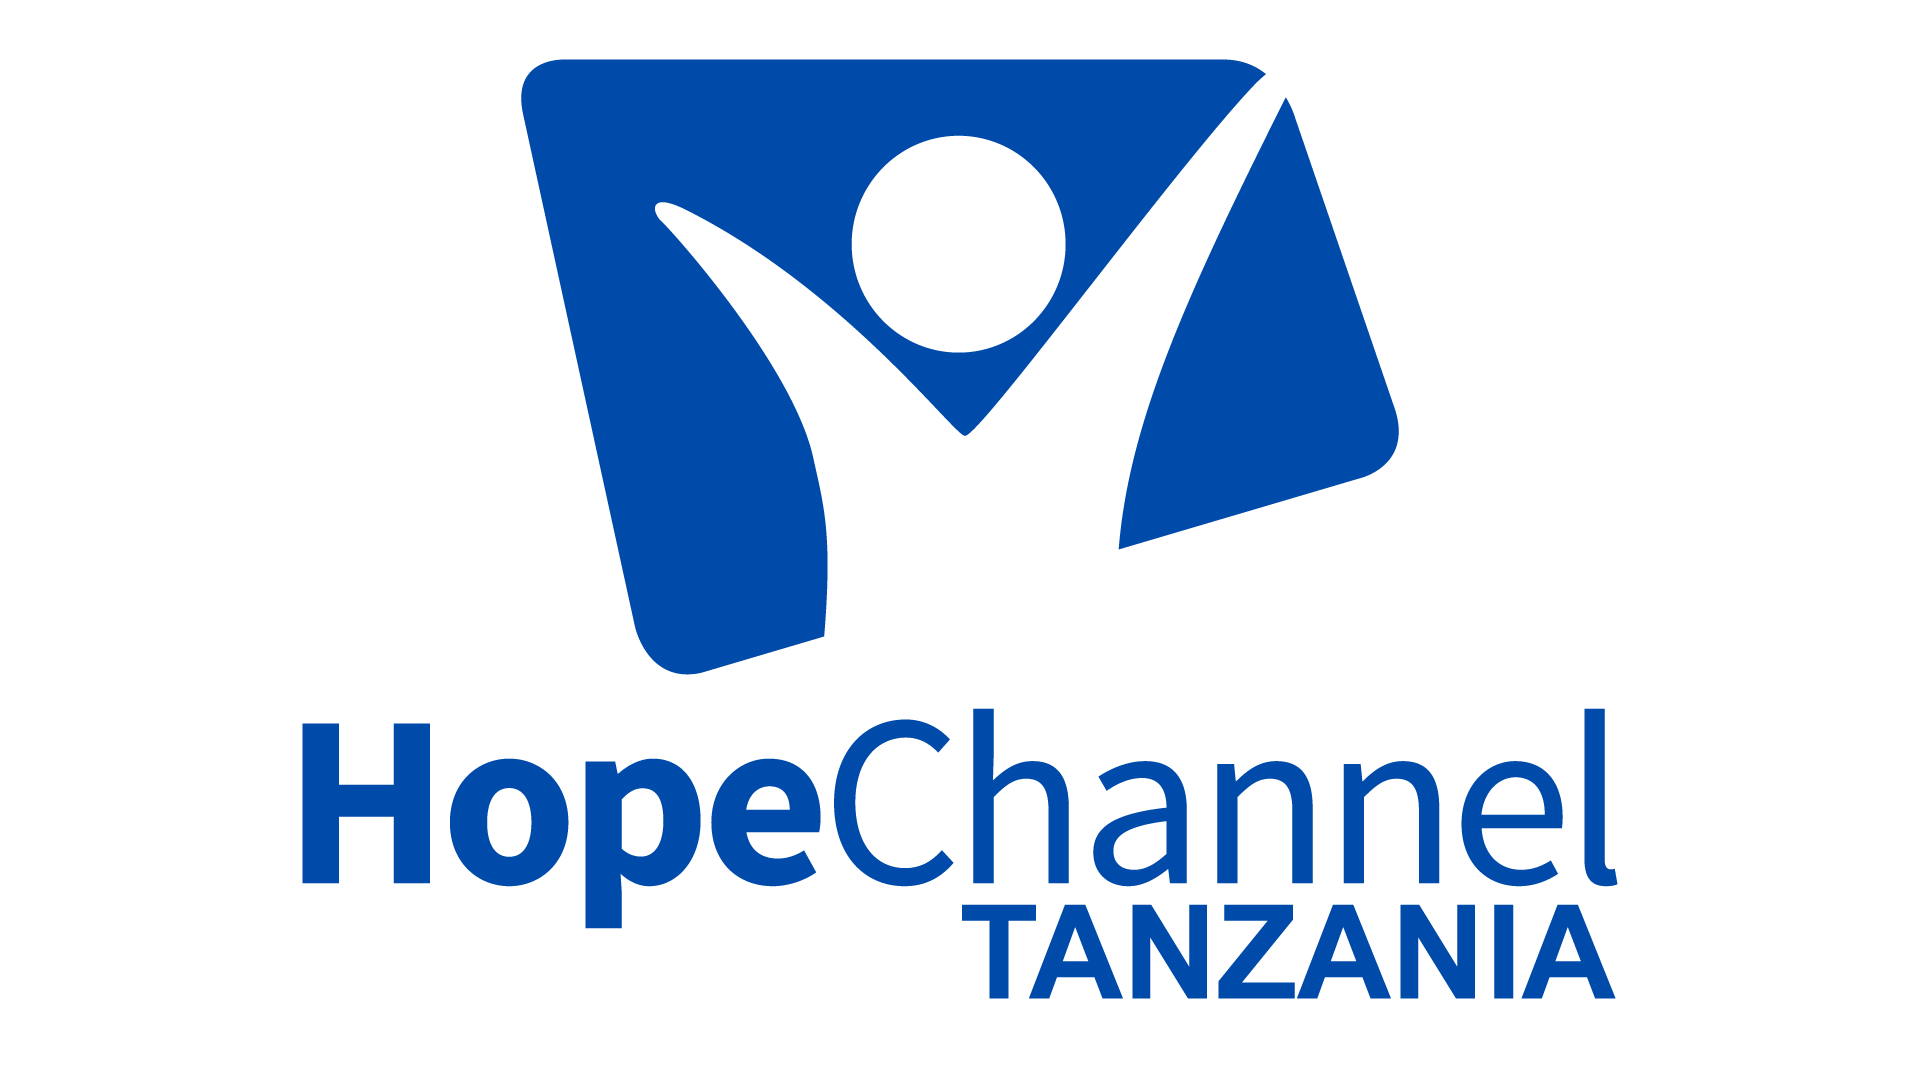 Hope Channel Tanzania Live TV, Online